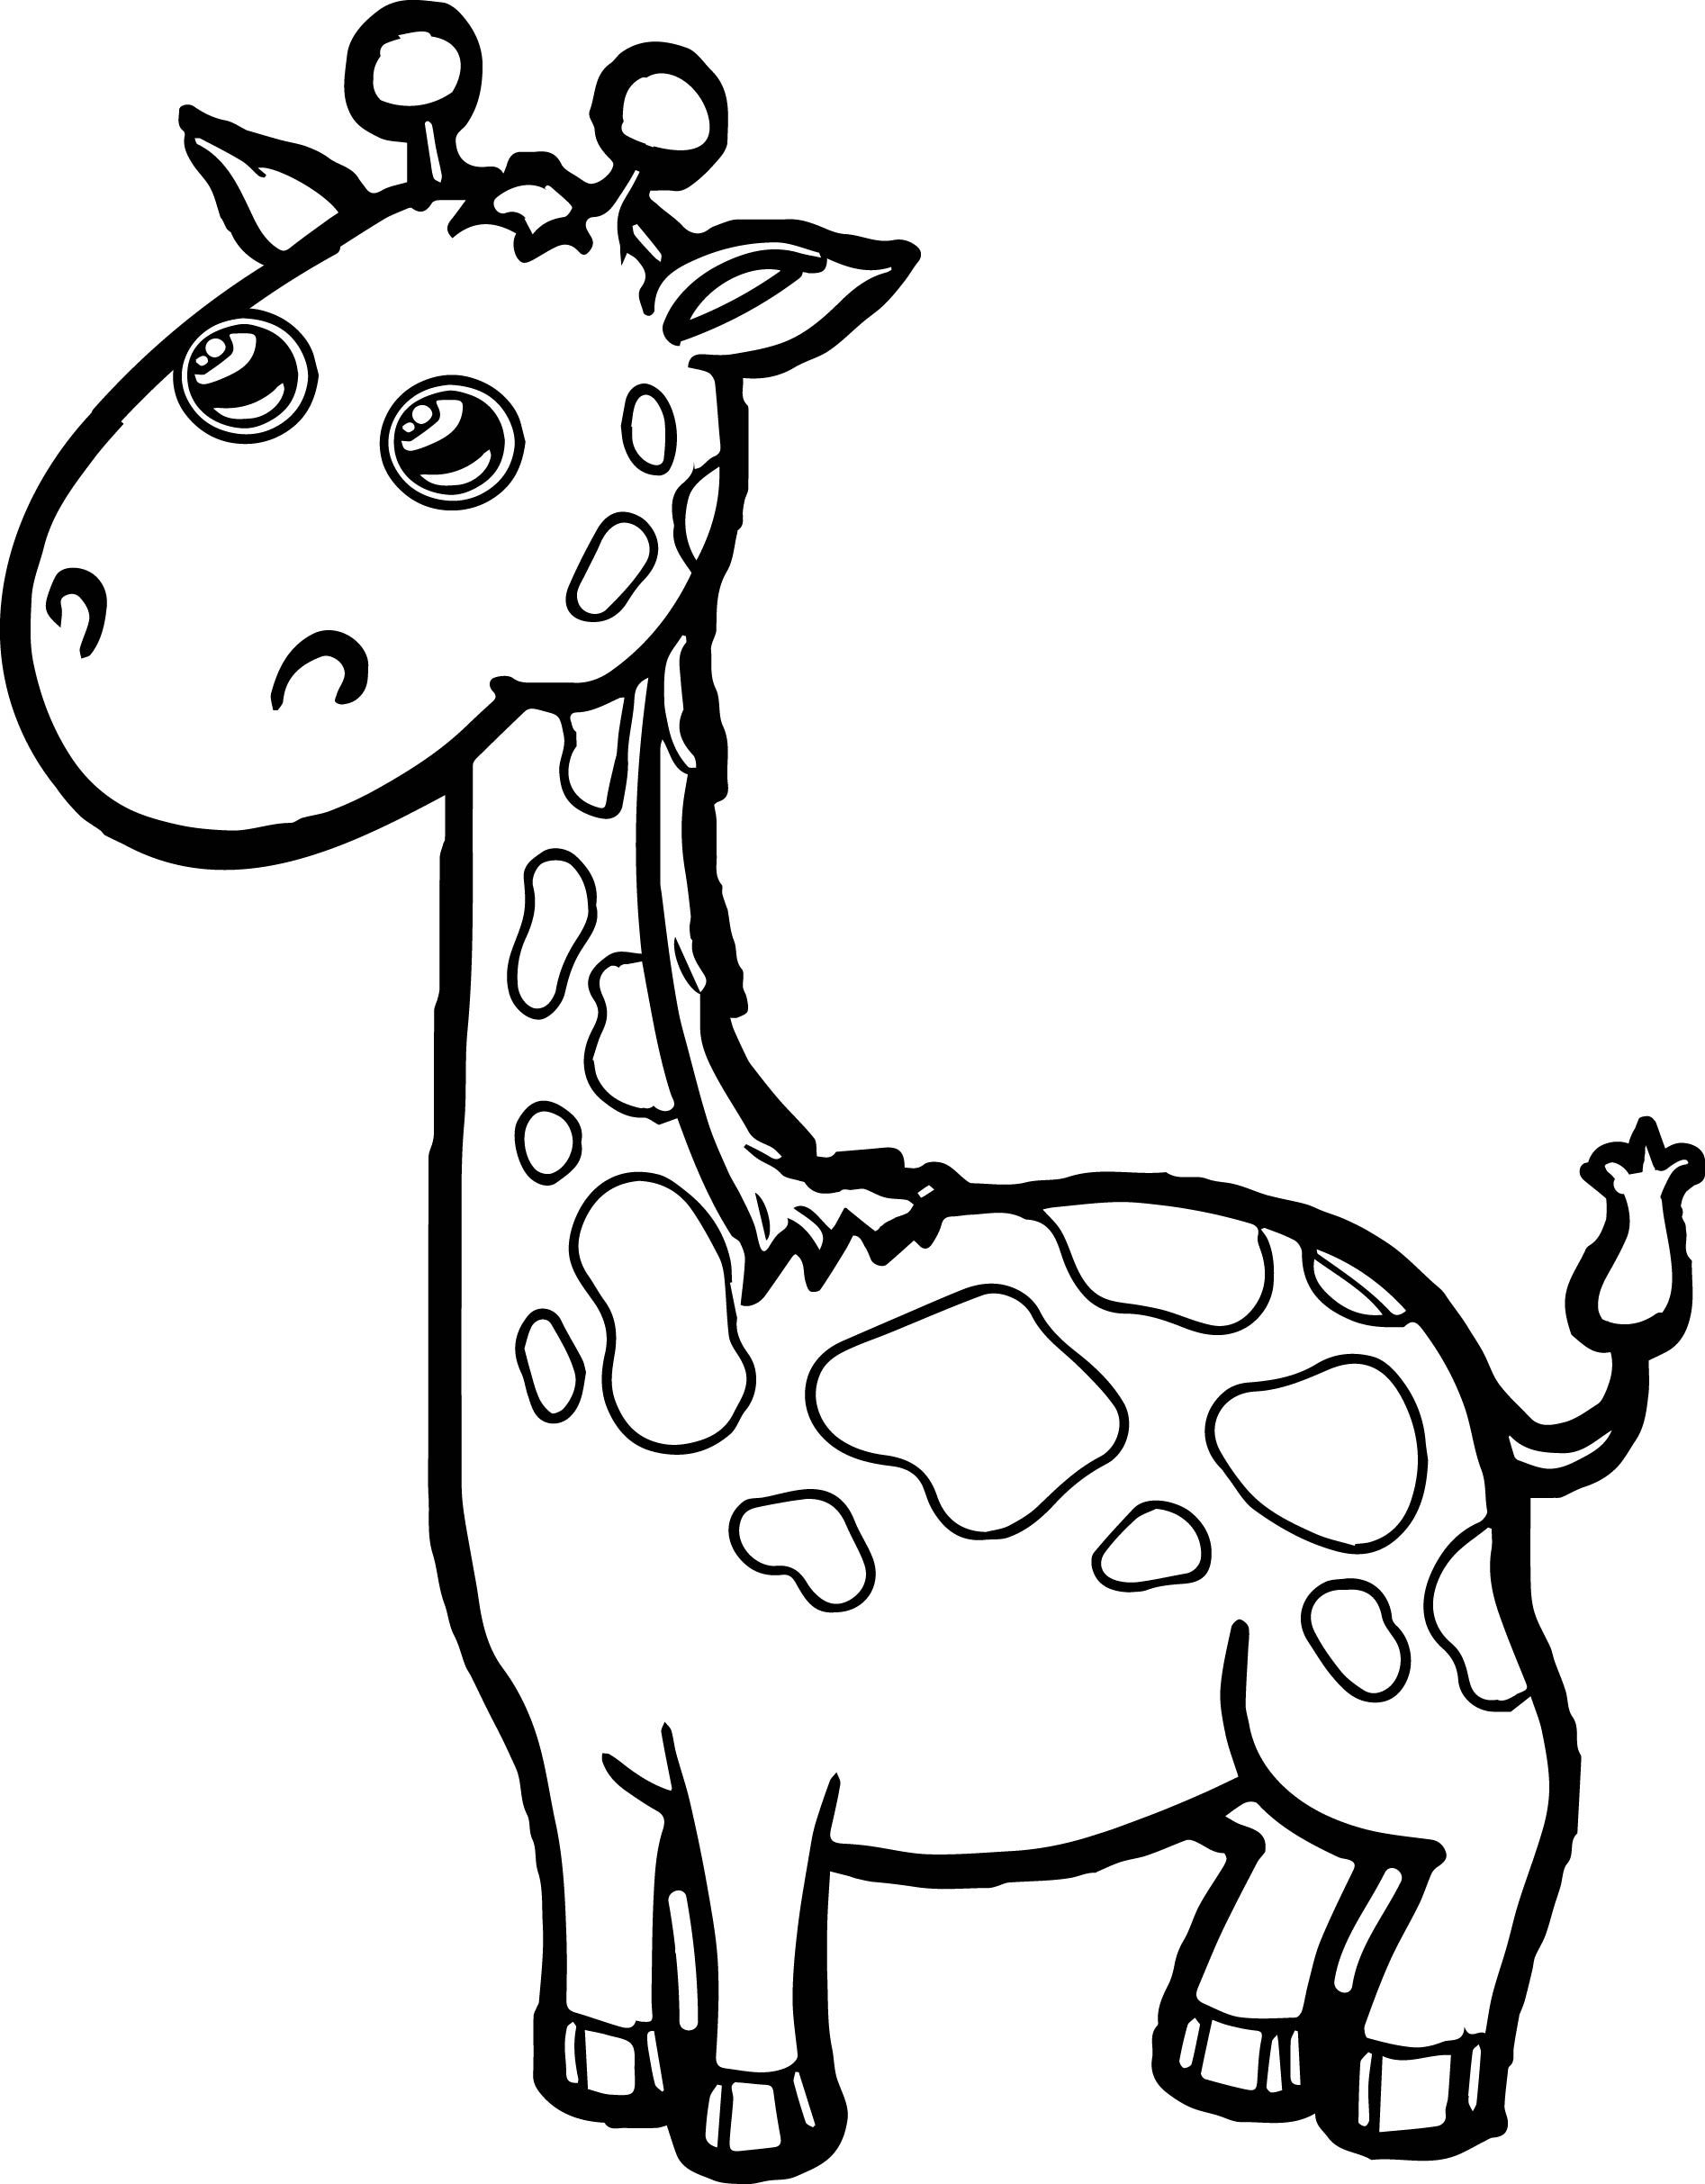 zoo animals coloring pictures get this online zoo coloring pages for kids 51254 animals coloring pictures zoo